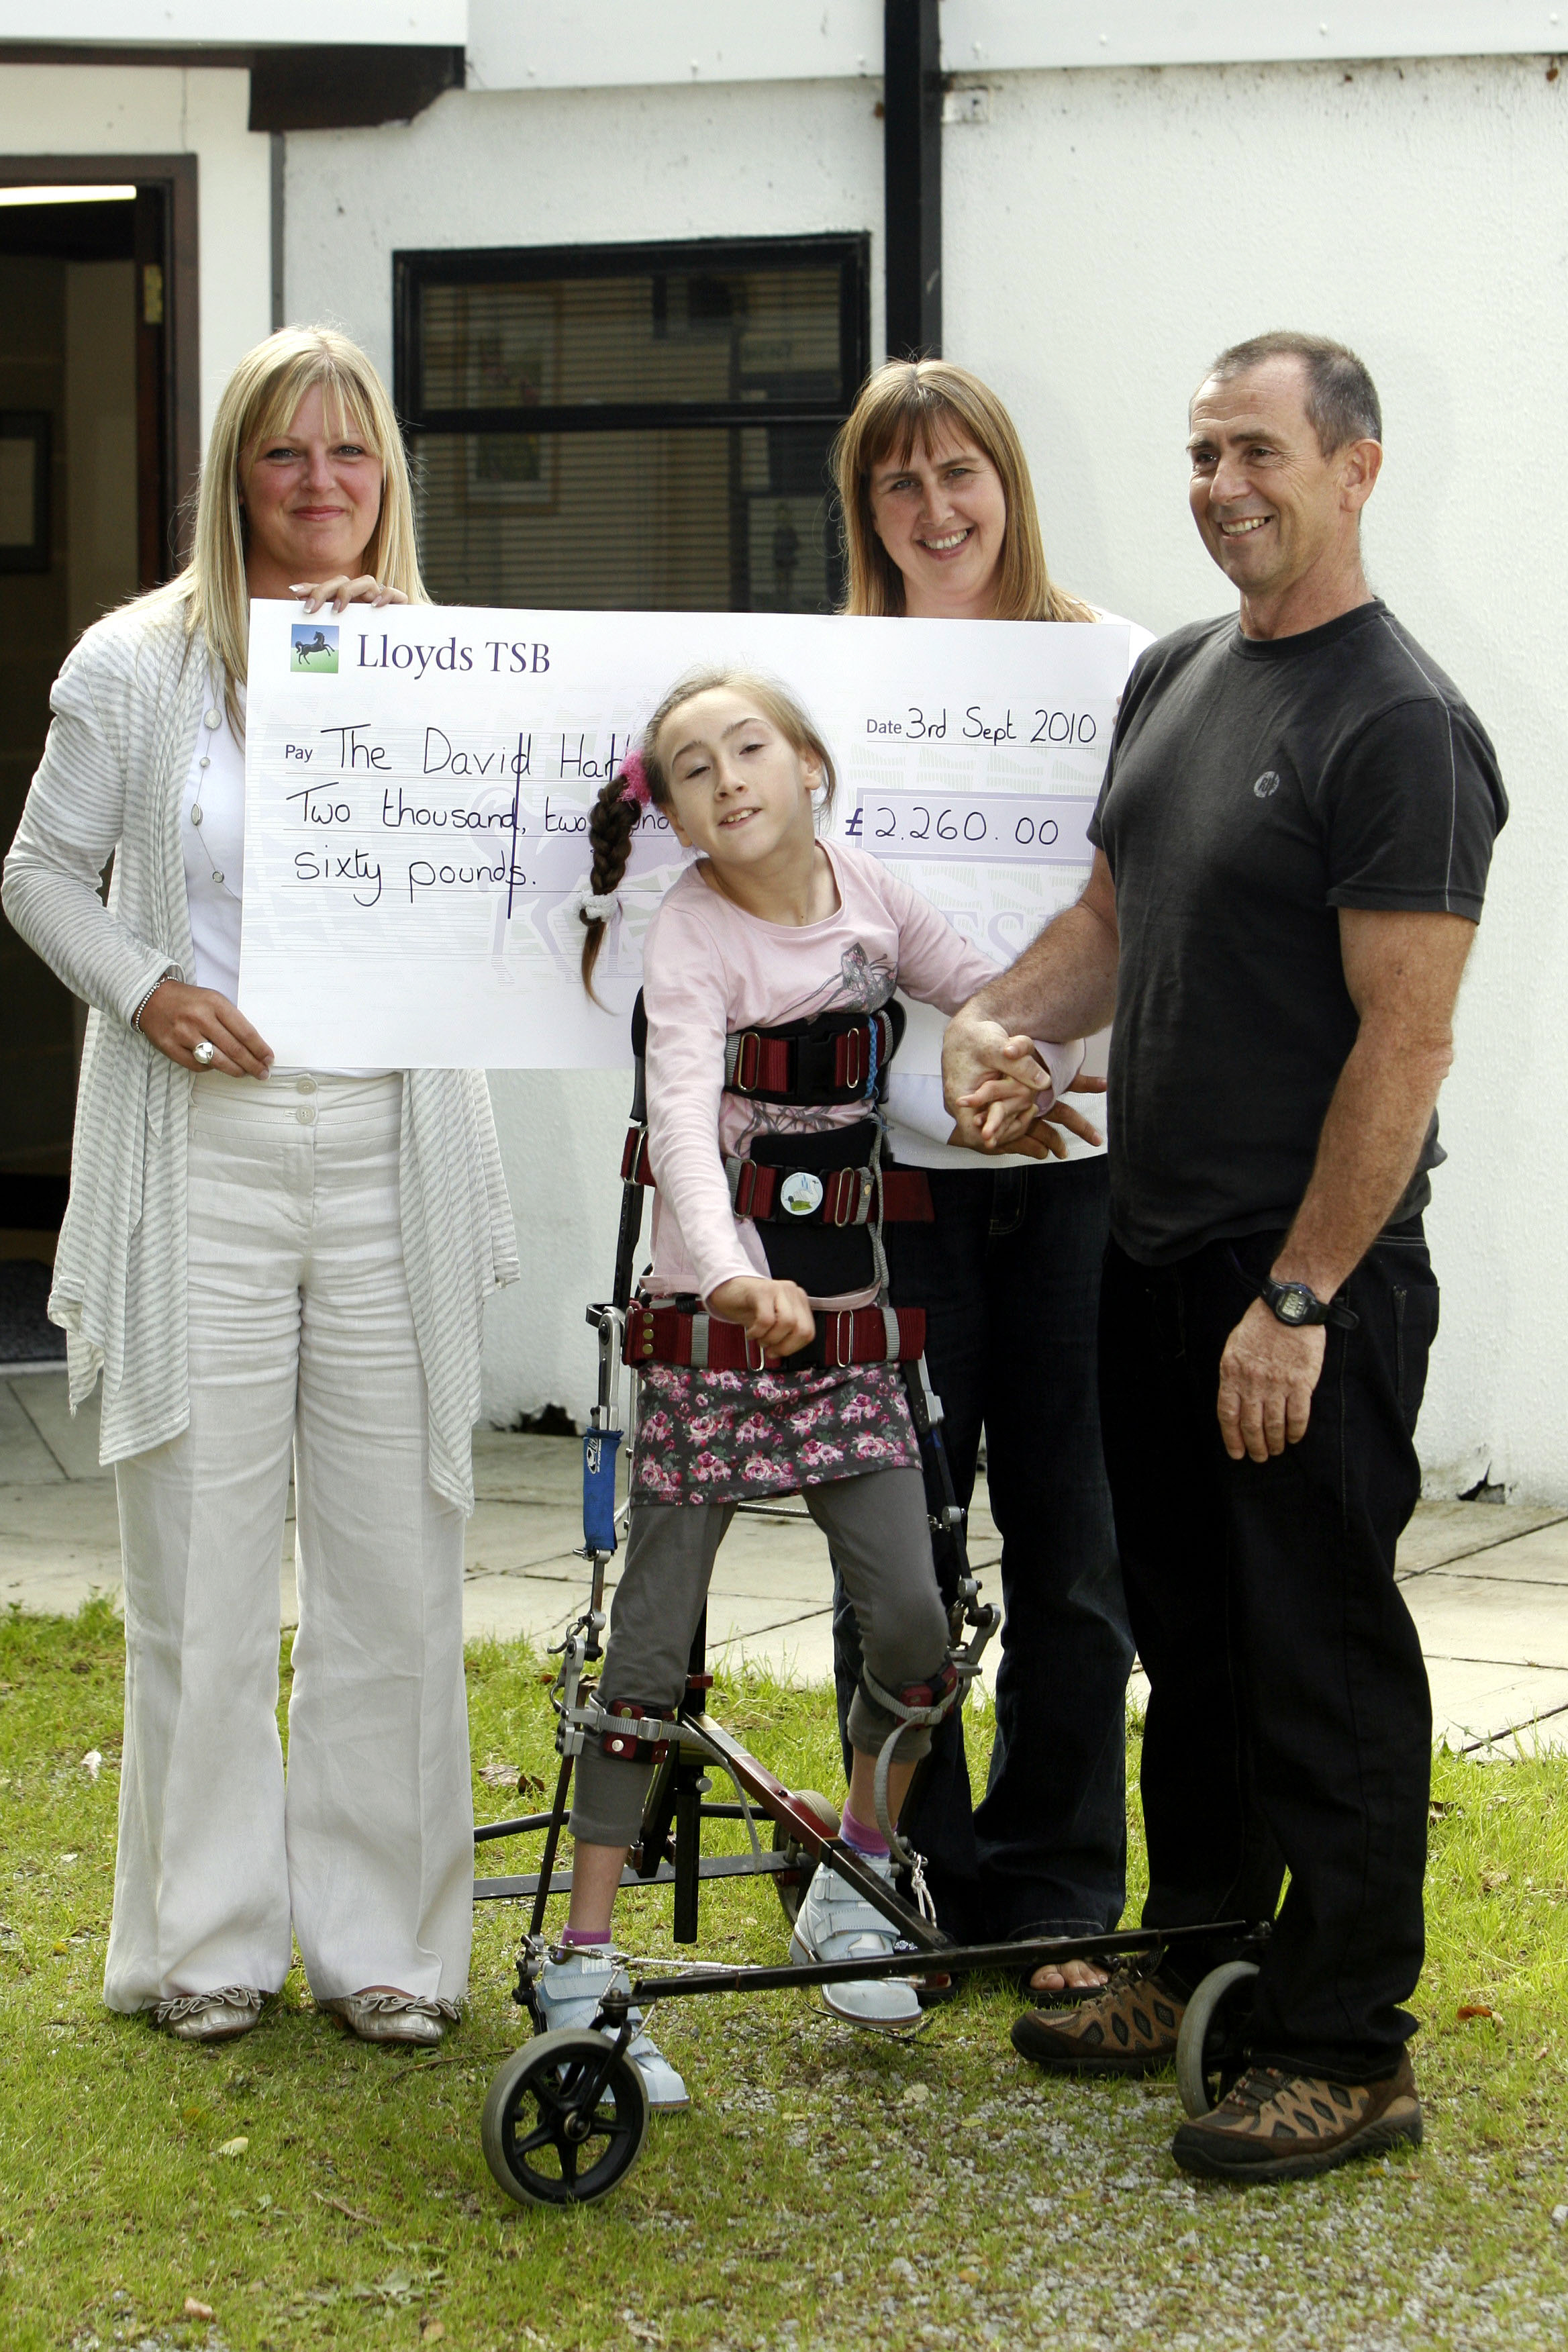 Natasha Lambert, then aged 13, when she visited the David Hart Clinic with her mum and dad, Amanda and Gary